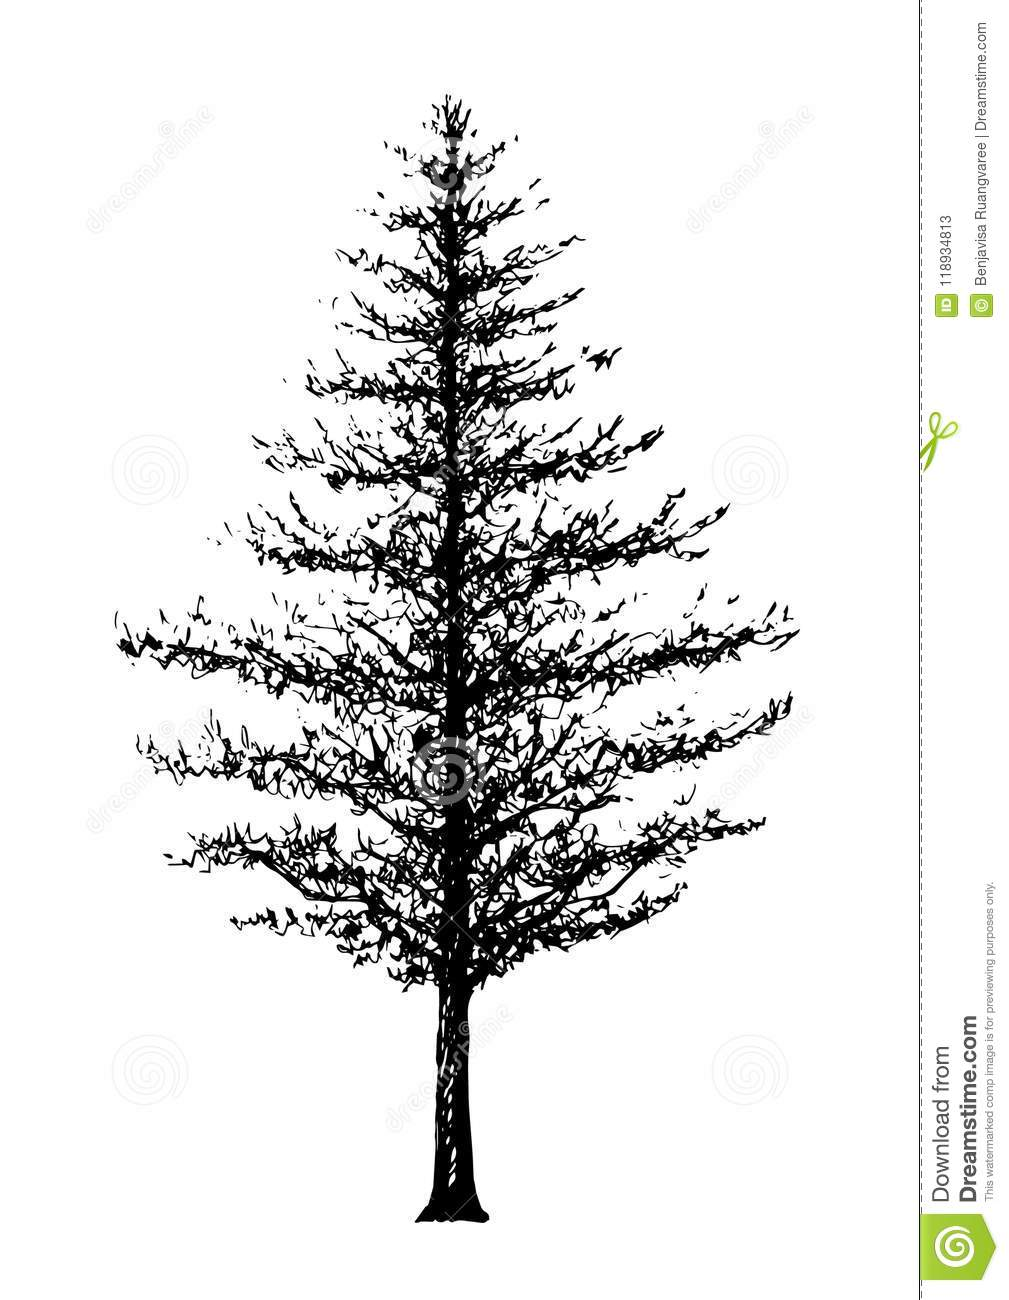 Tree Forest Hand Drawing Sketch Vector Illustration Design Stock Vector Illustration Of Hand Green 118934813